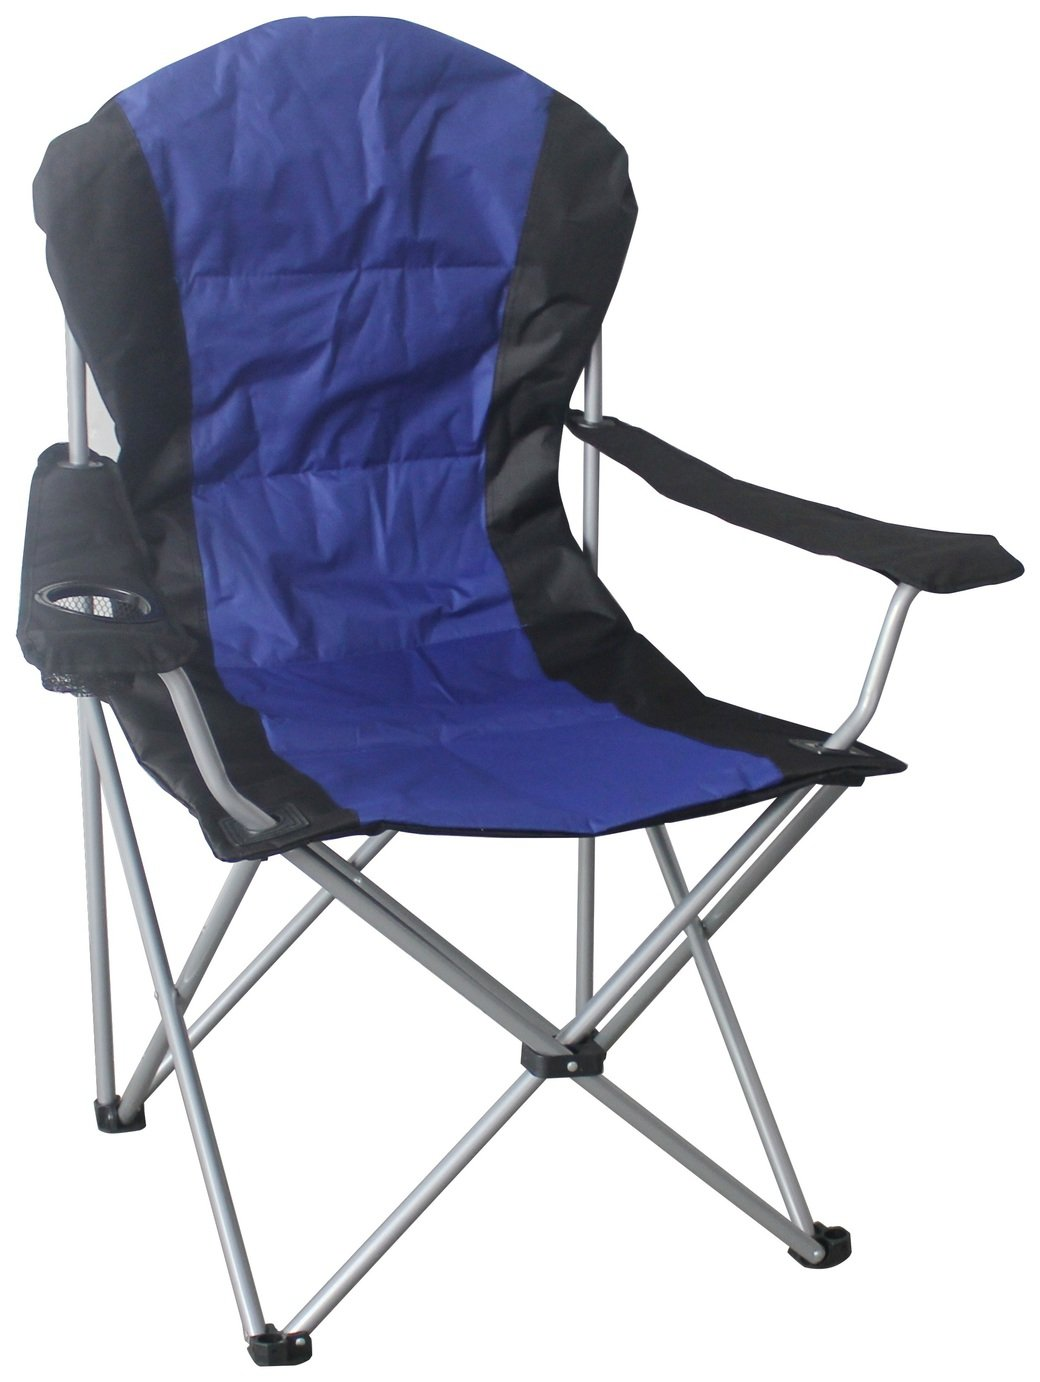 Fabulous portable padded high back chair with table camping decathlon for Table quechua